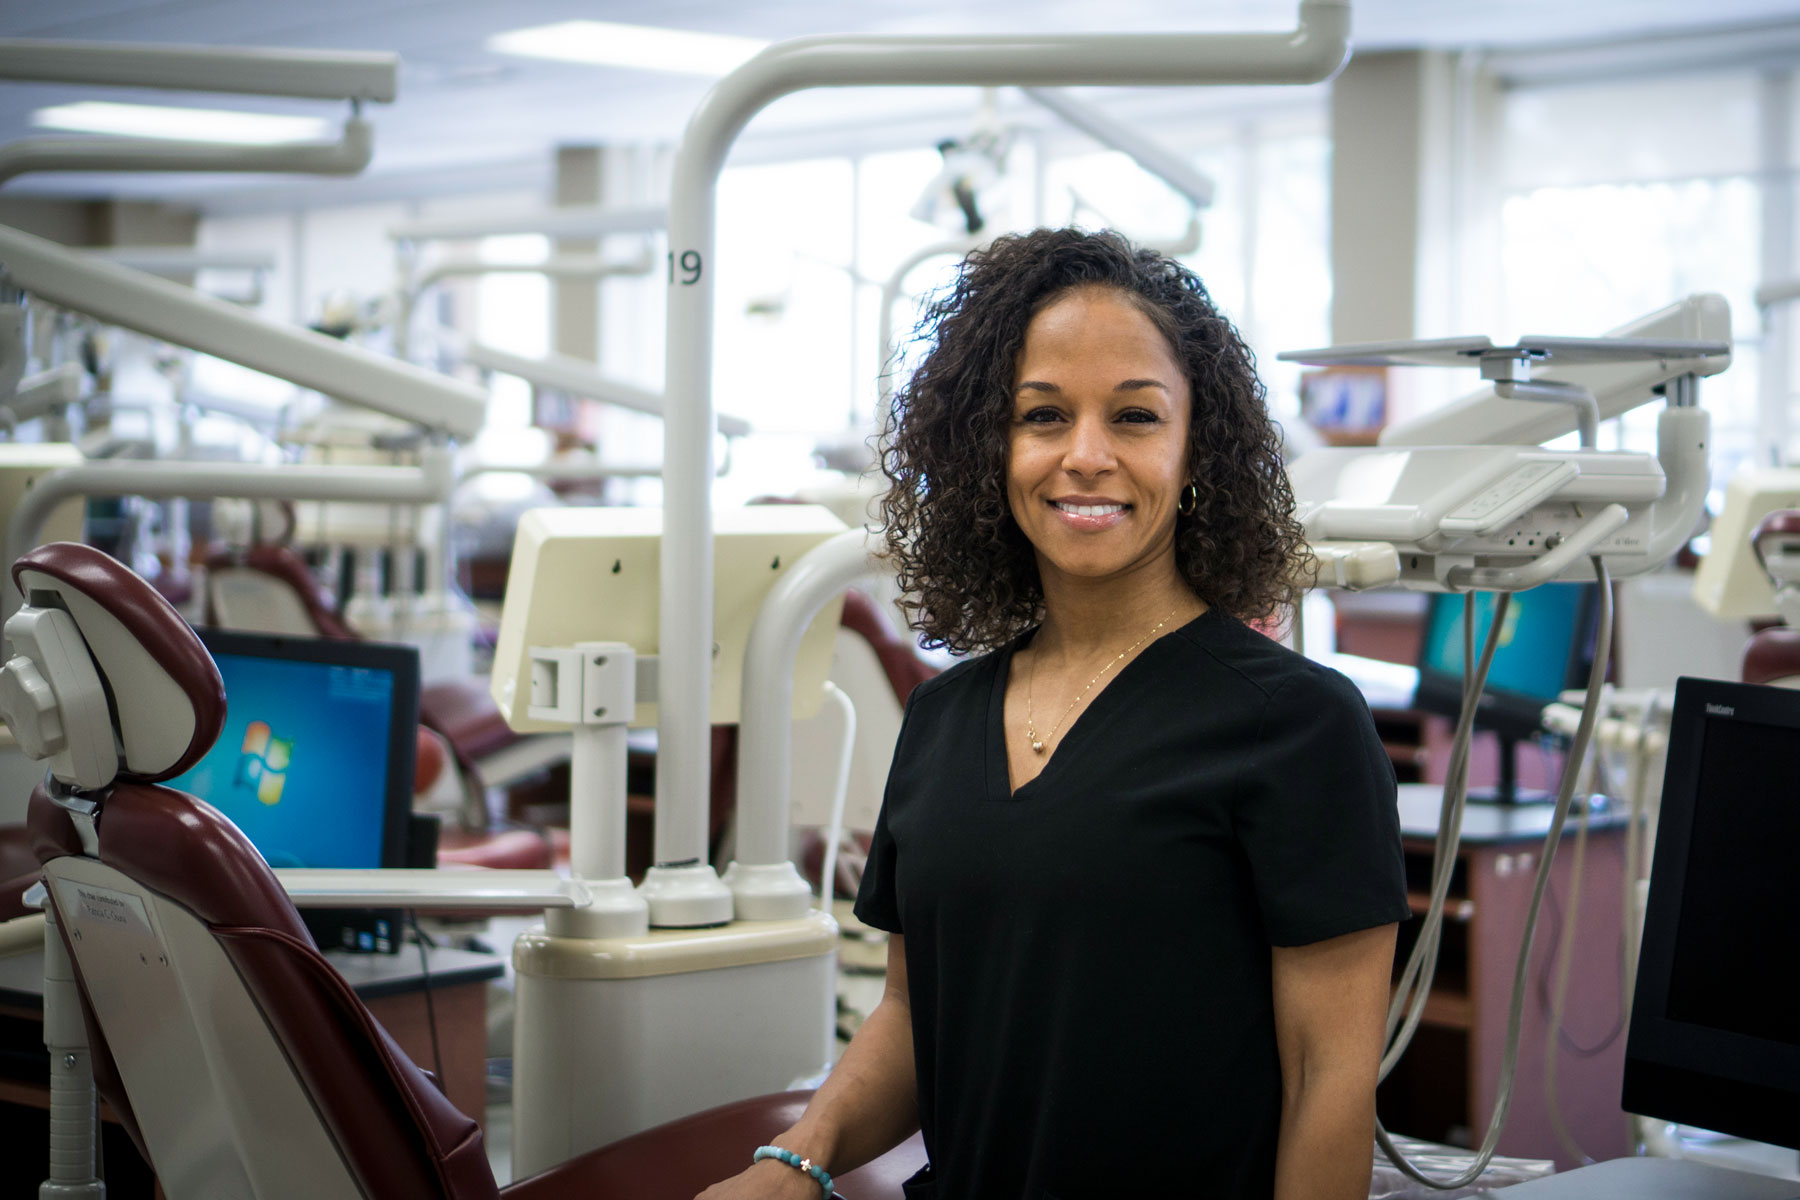 At Usc First Gen Dental Hygiene Graduate Defies The Odds